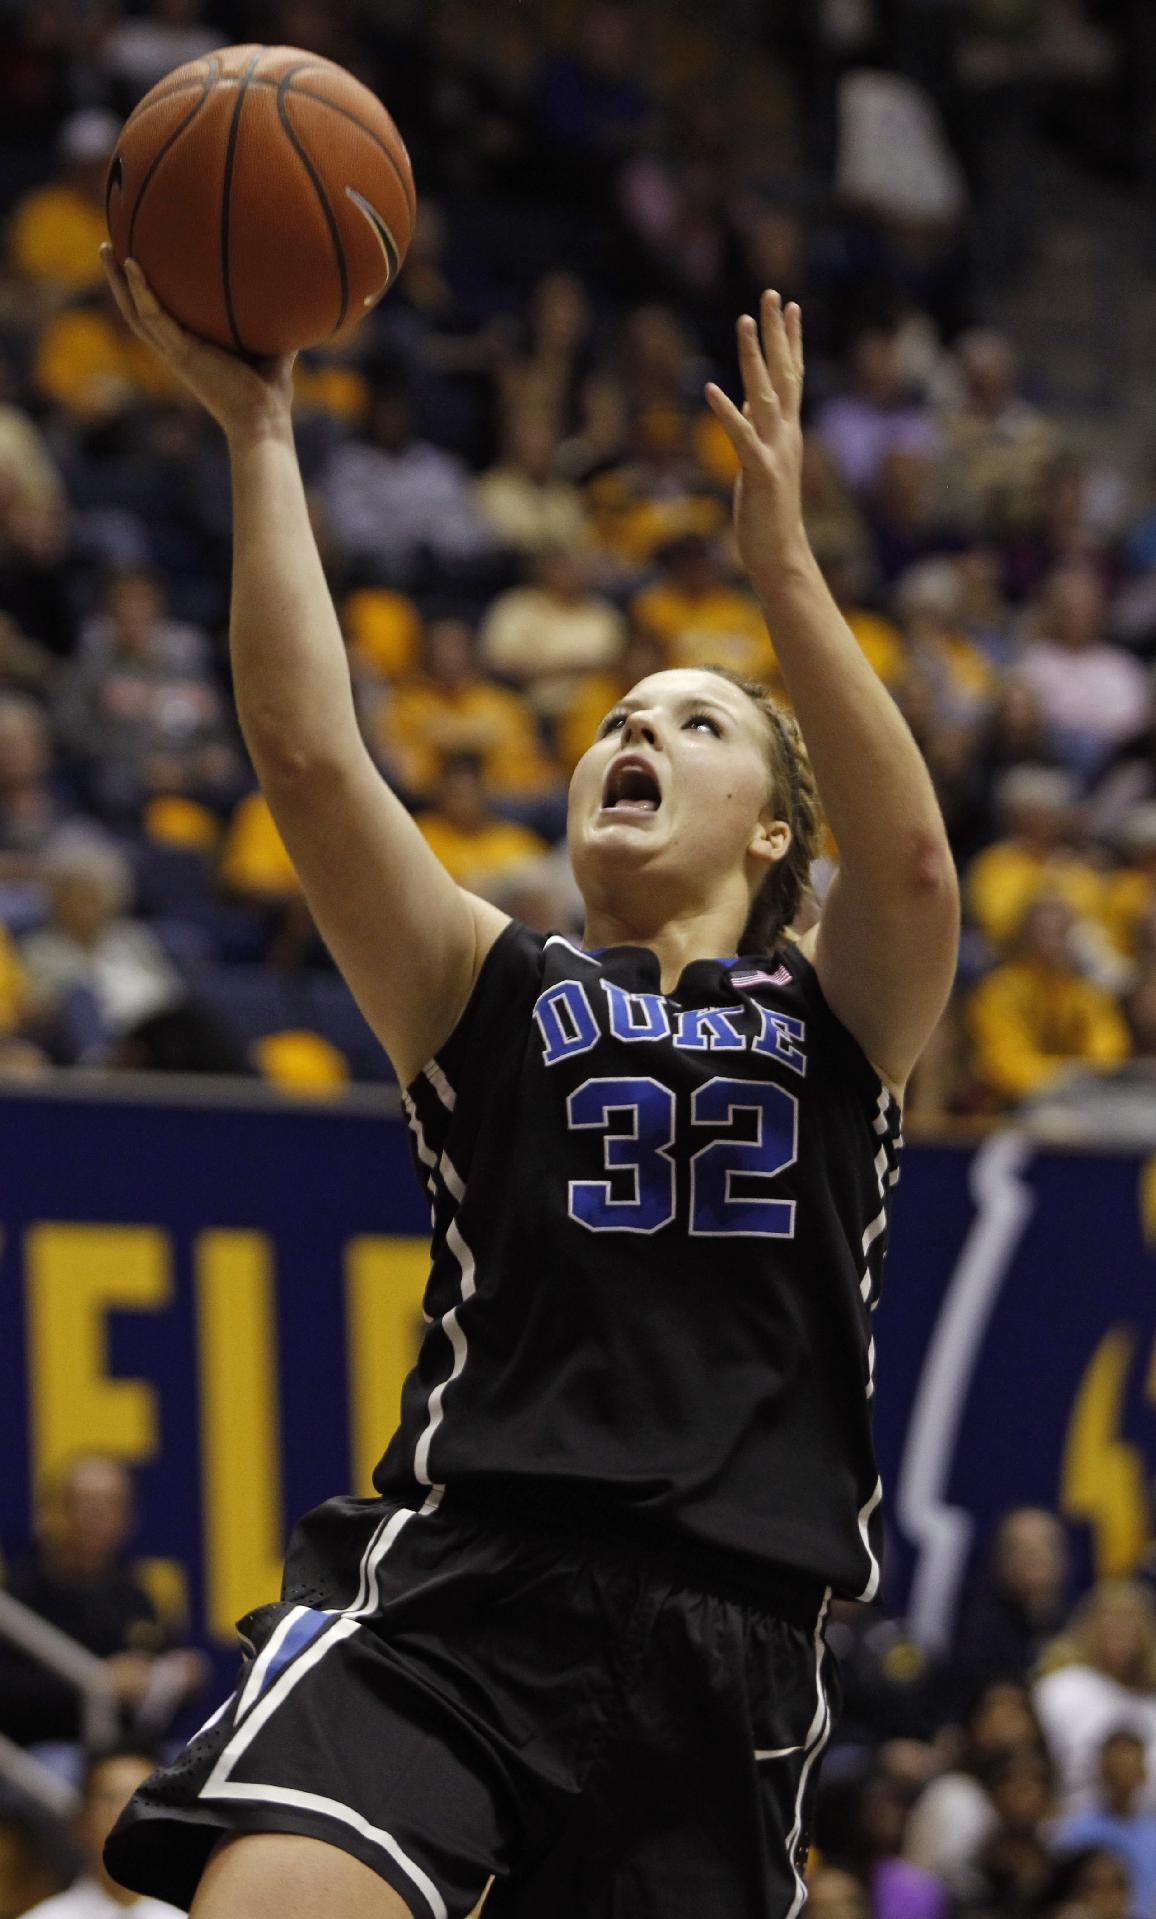 Duke's Tricia Liston shoots against California during the first half of an NCAA college basketball game, Sunday, Nov. 10, 2013 in Berkeley, Calif